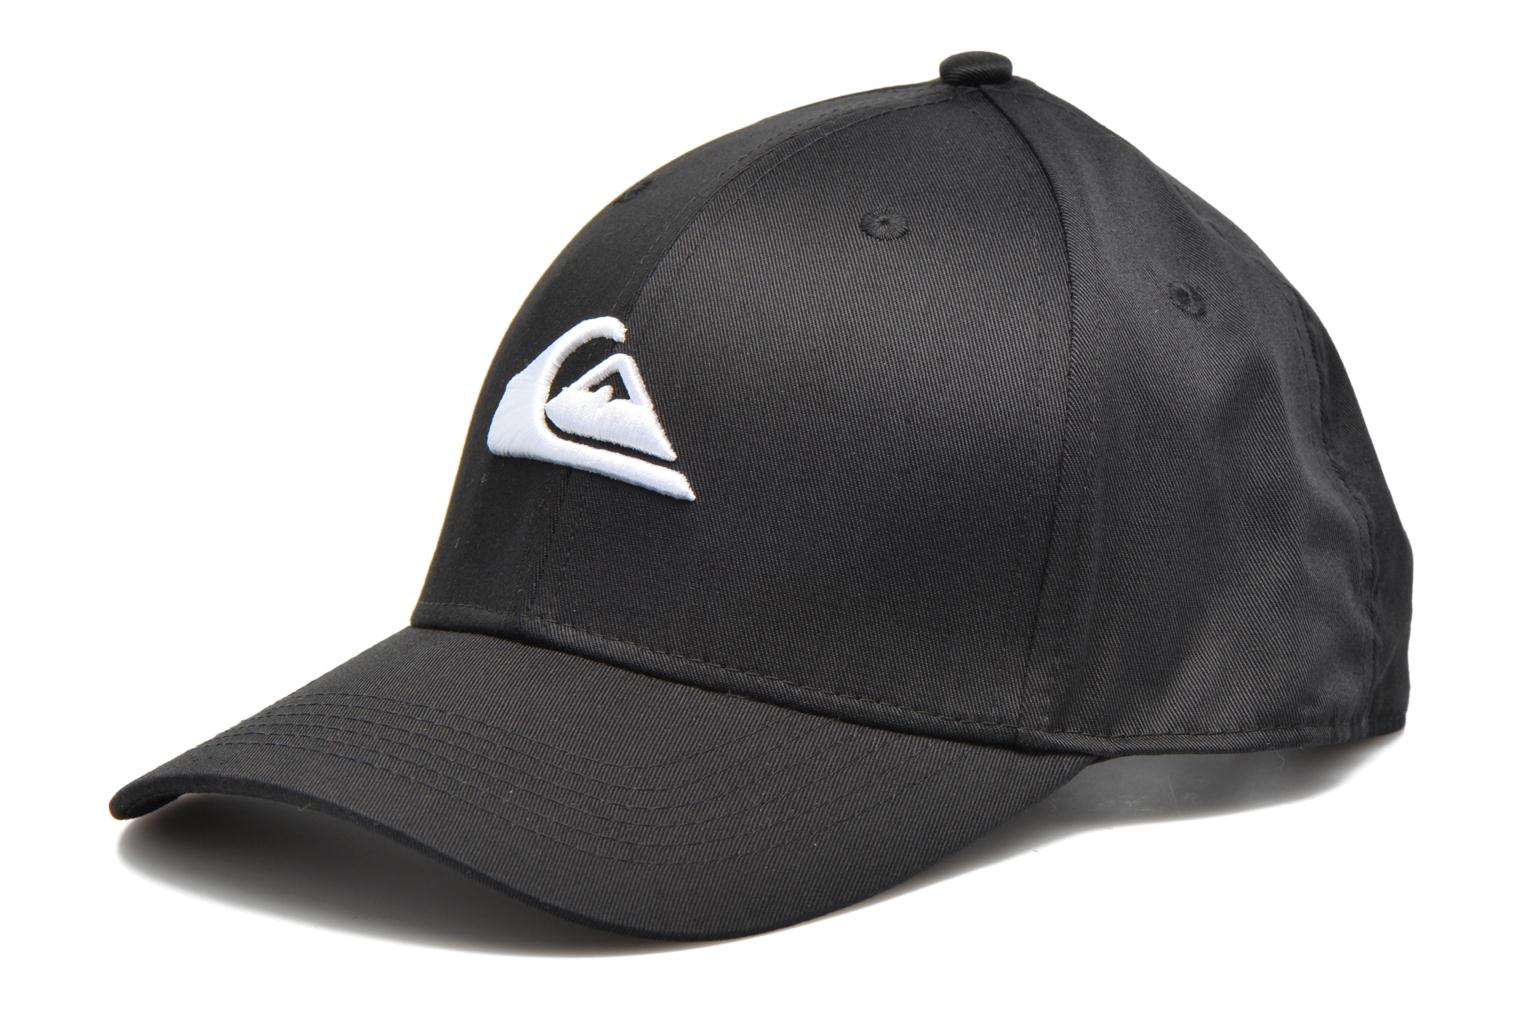 Divers Quiksilver Decades M Cap Zwart detail